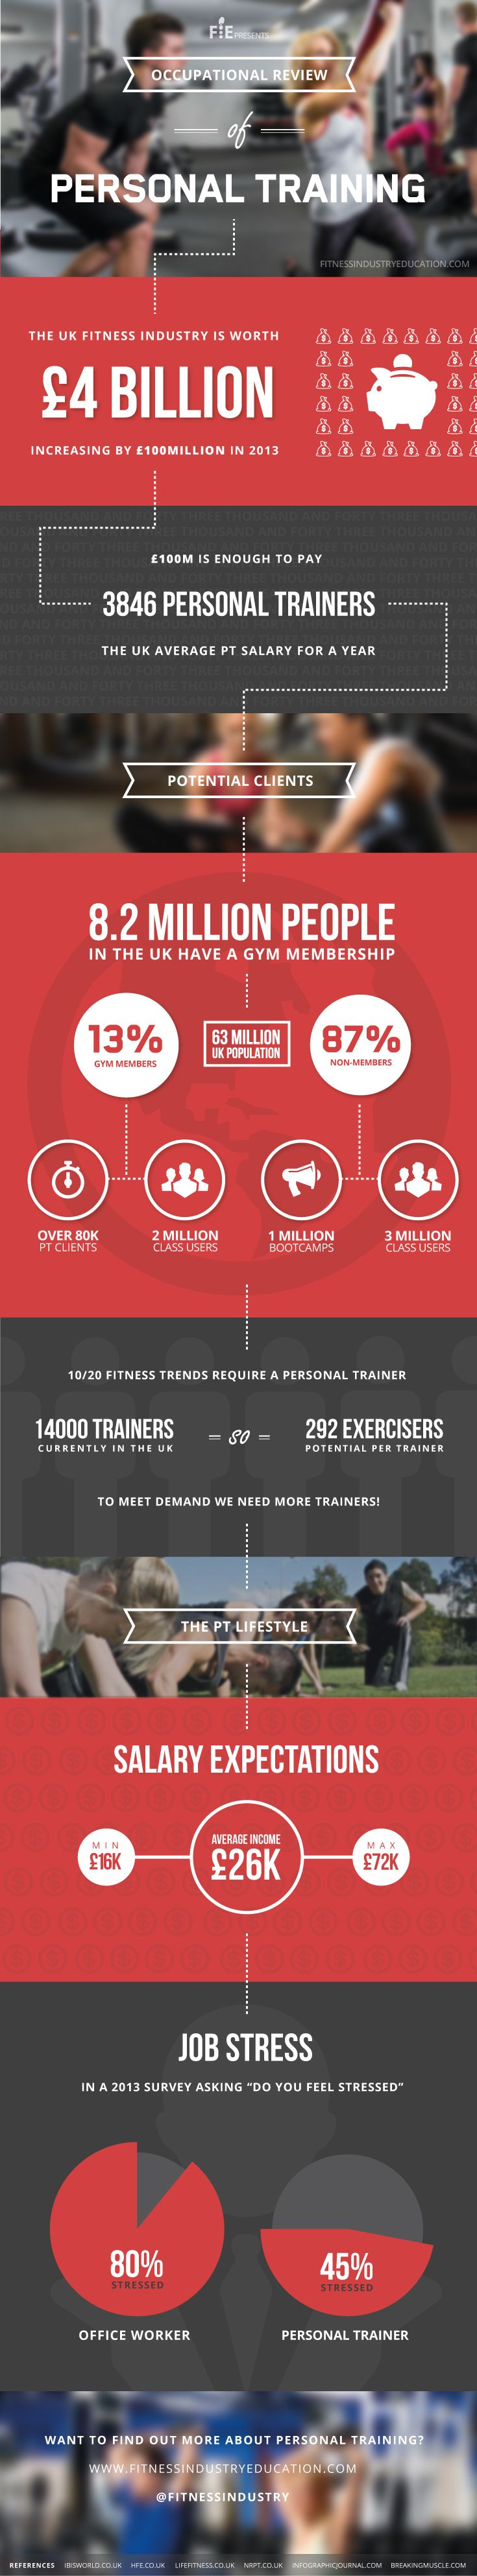 Become a Personal Trainer with Fitness Industry Education - An overview of what Personal Training Courses have to offer.